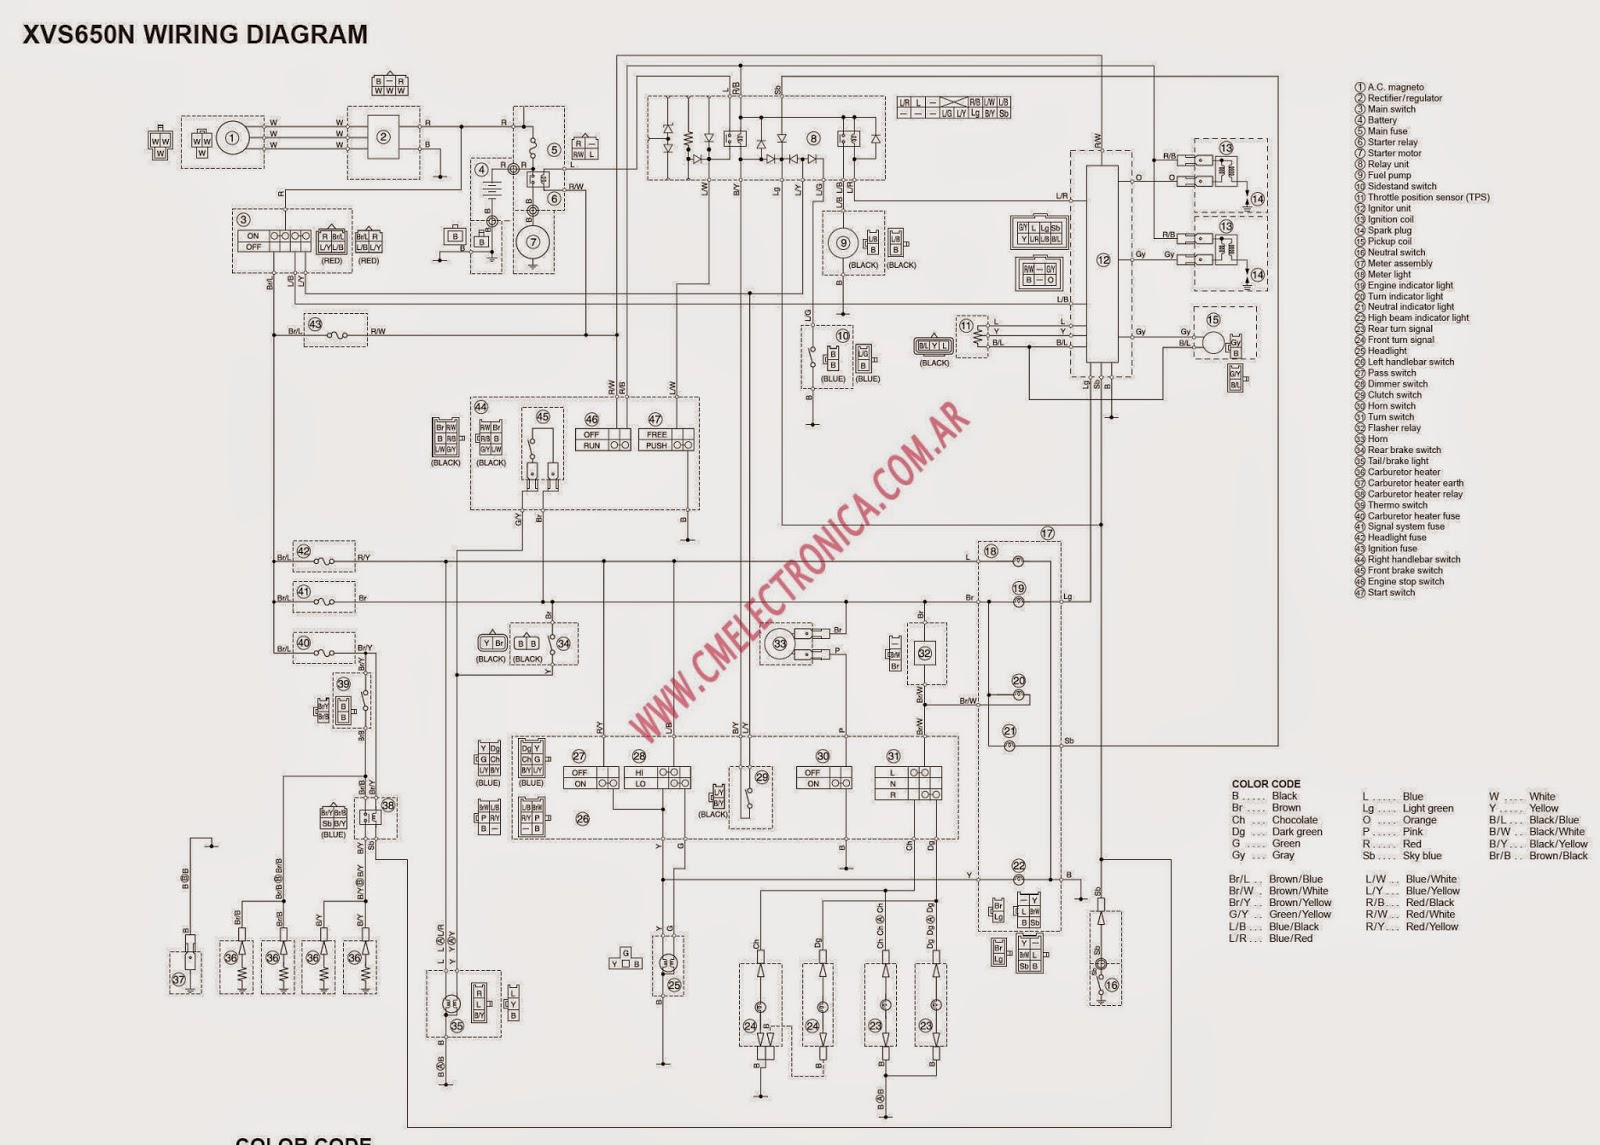 Fuse Diagram 2000 Ford 650 Vstar Wiring Diagrams Source The Chop Shop Xvs650 Yahama V Star